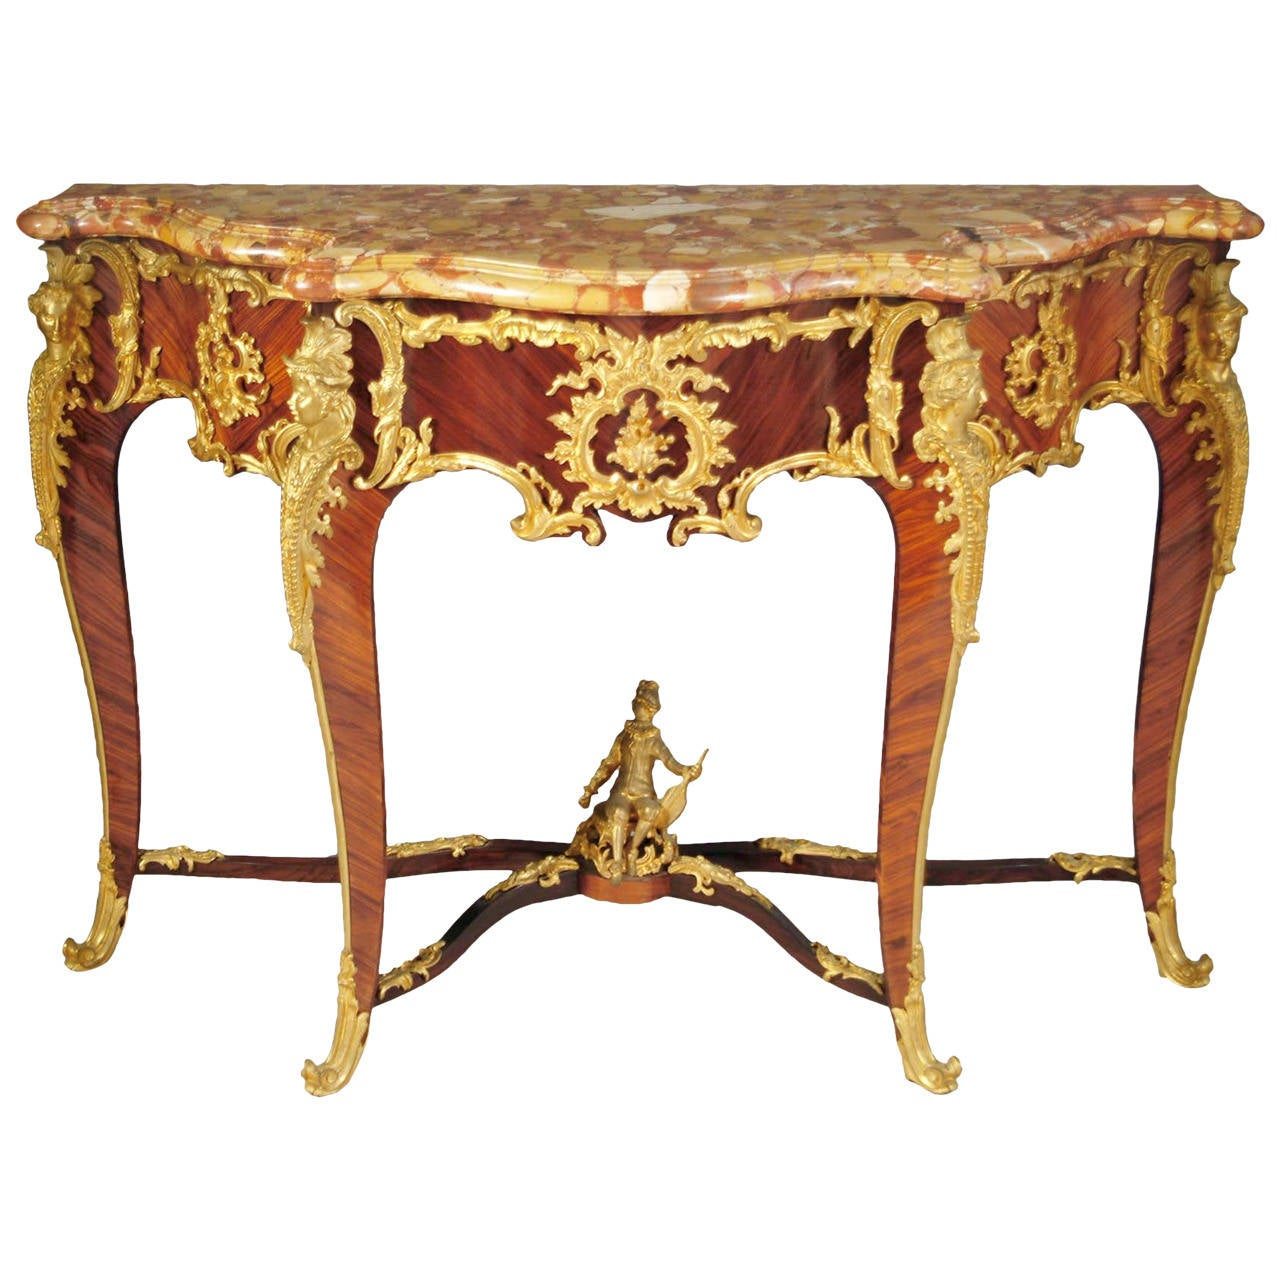 French louis xv style ormolu mounted king wood console table with marble top for sale at 1stdibs - Table louis xv ...